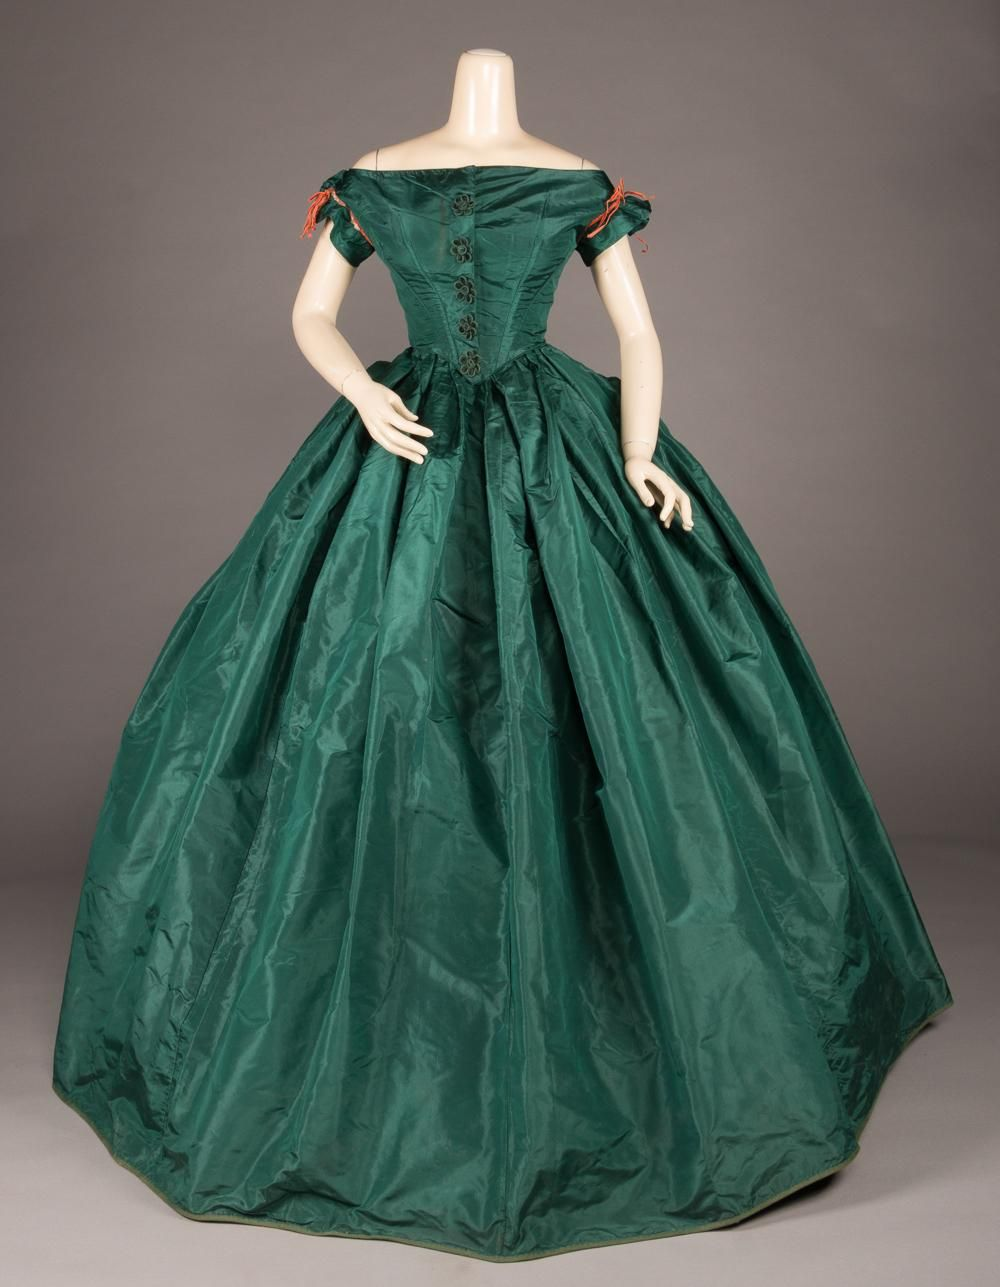 Sold Price Emerald Green Evening Gown C 1855 September 3 0120 11 00 Am Edt Green Evening Gowns Emerald Green Evening Gown Victorian Evening Gown [ 1287 x 1000 Pixel ]